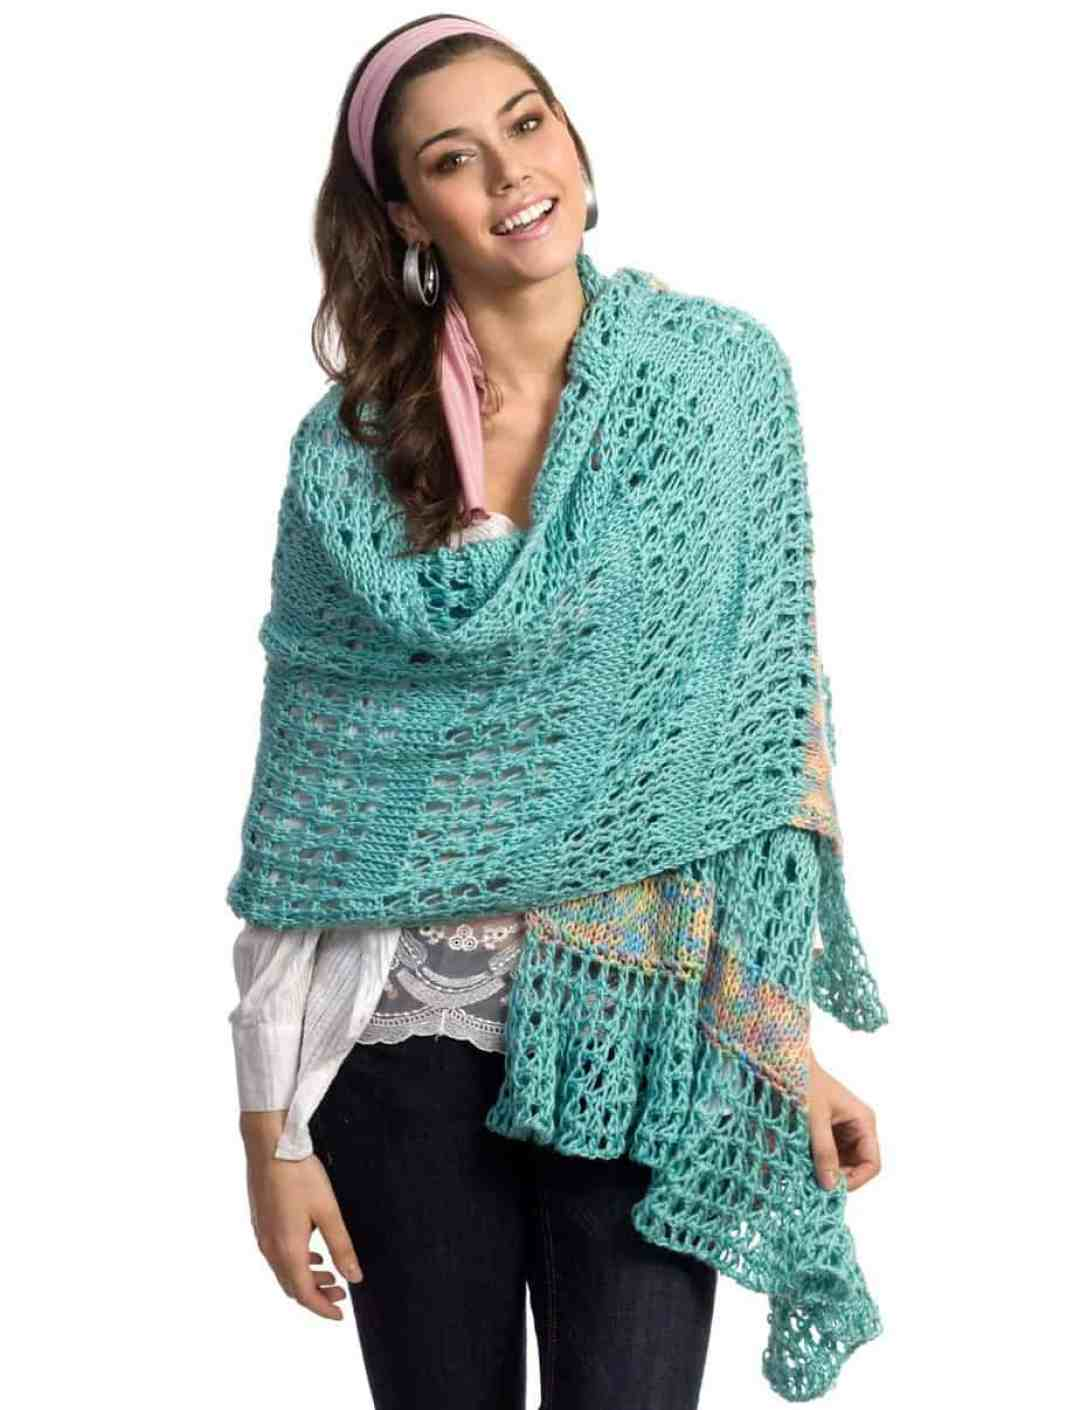 Free Crochet Pattern: Tunisian Lace Wrap